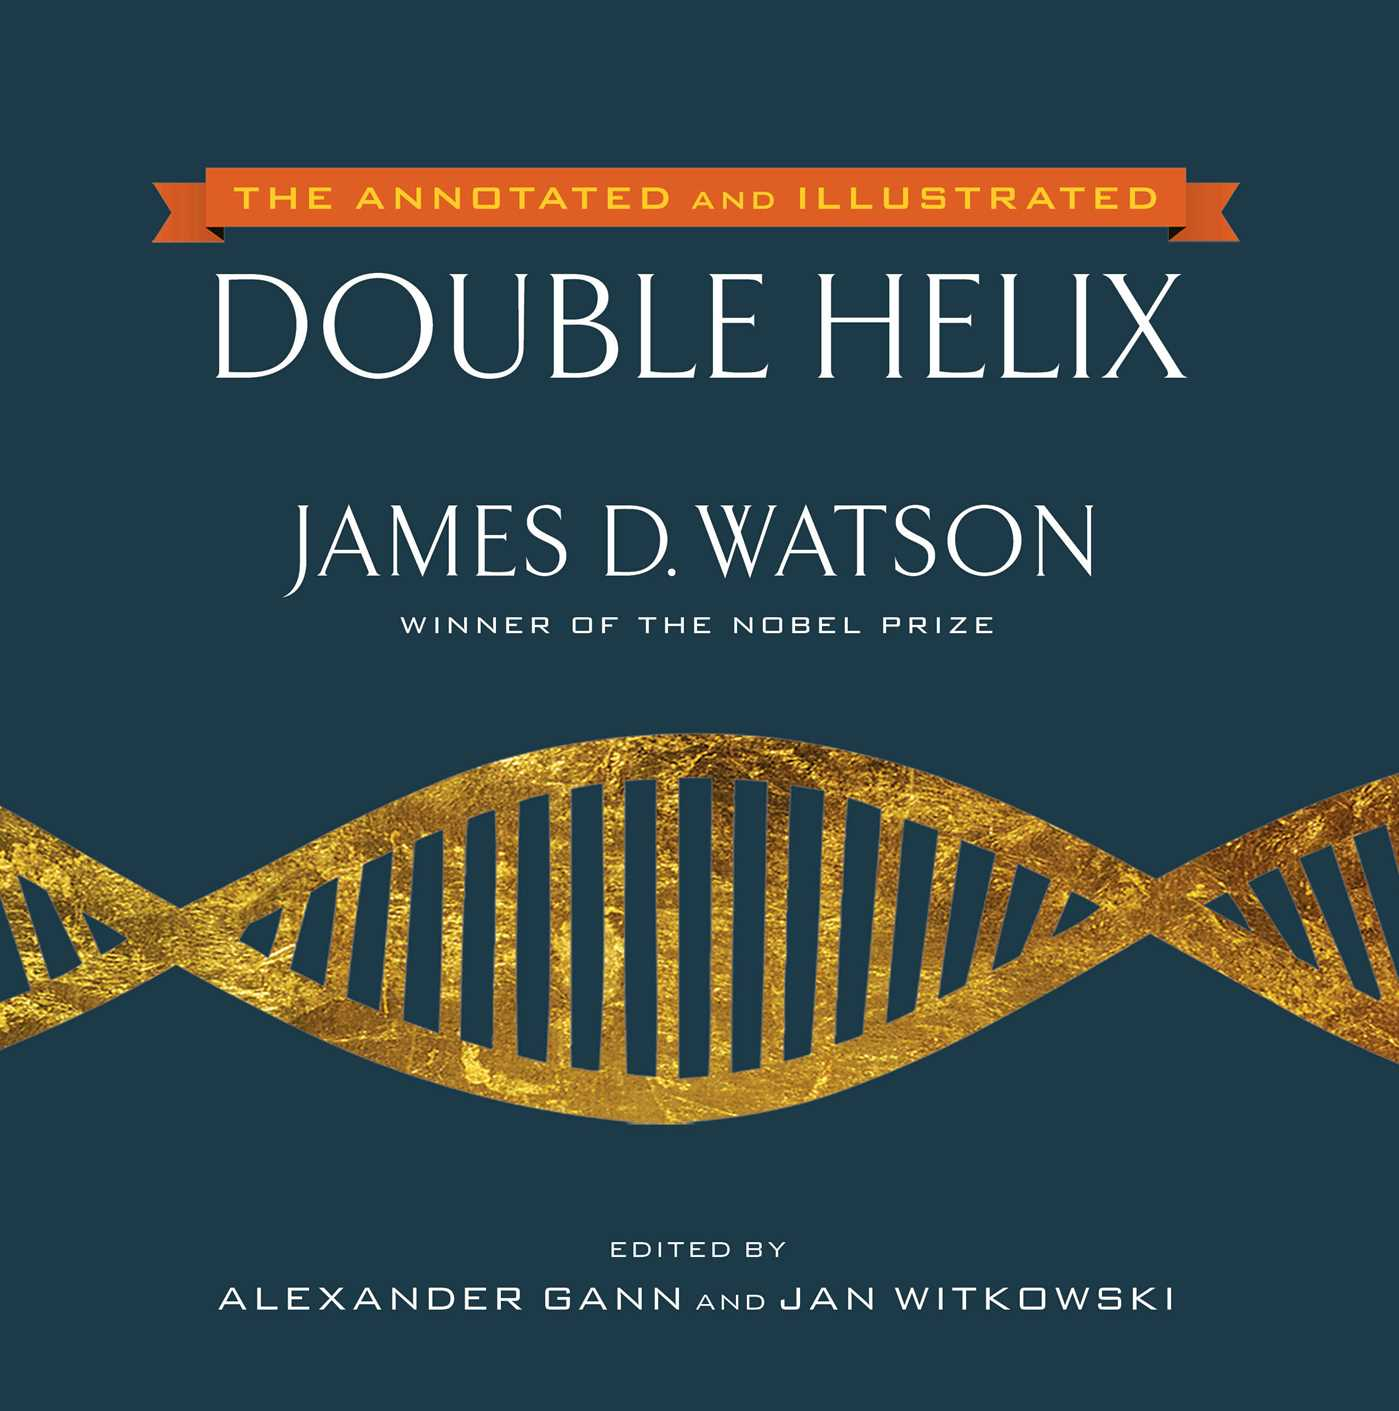 The-annotated-and-illustrated-double-helix-9781476715513_hr